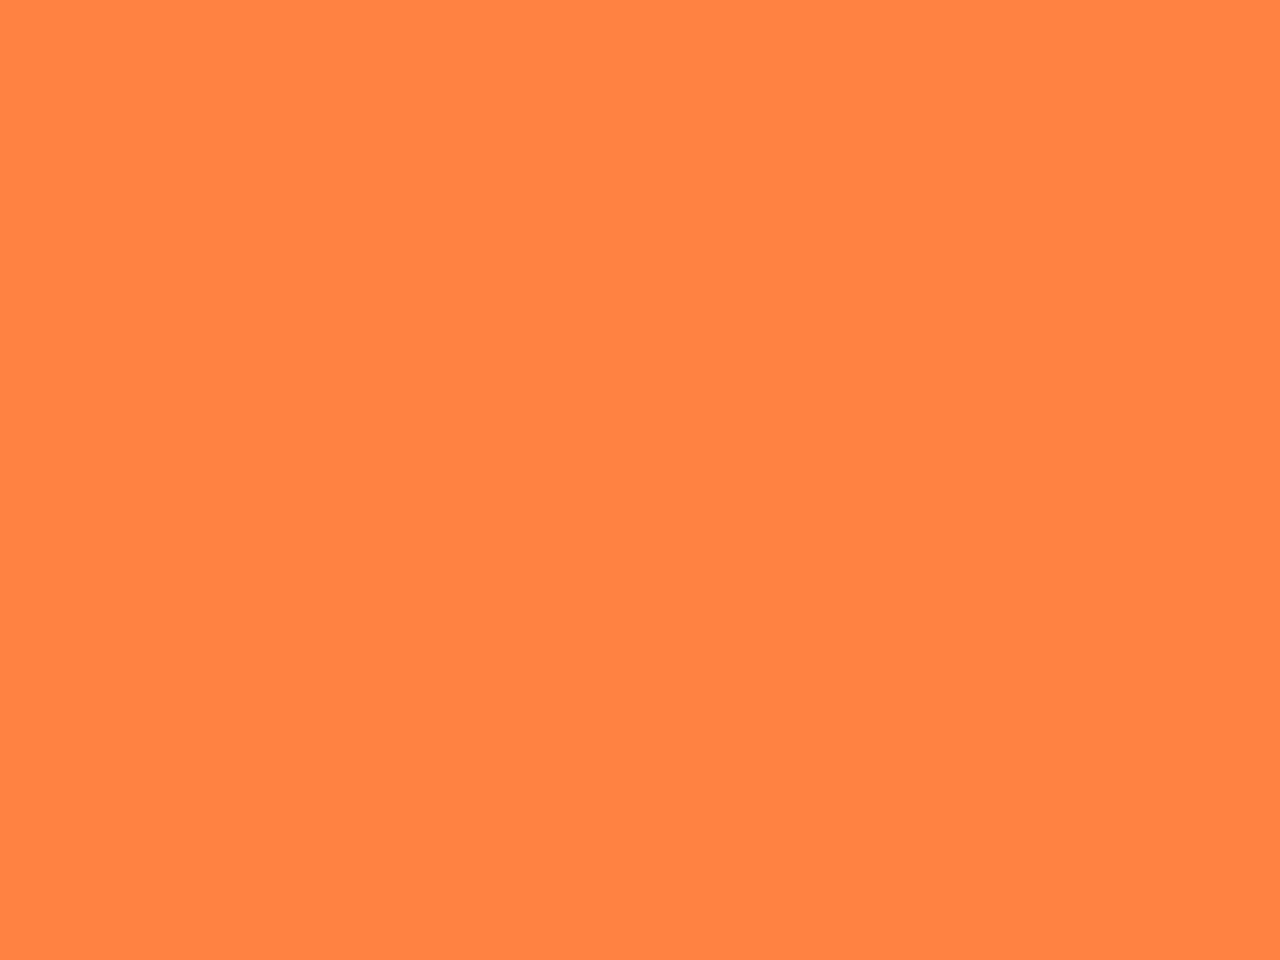 1280x960 Mango Tango Solid Color Background